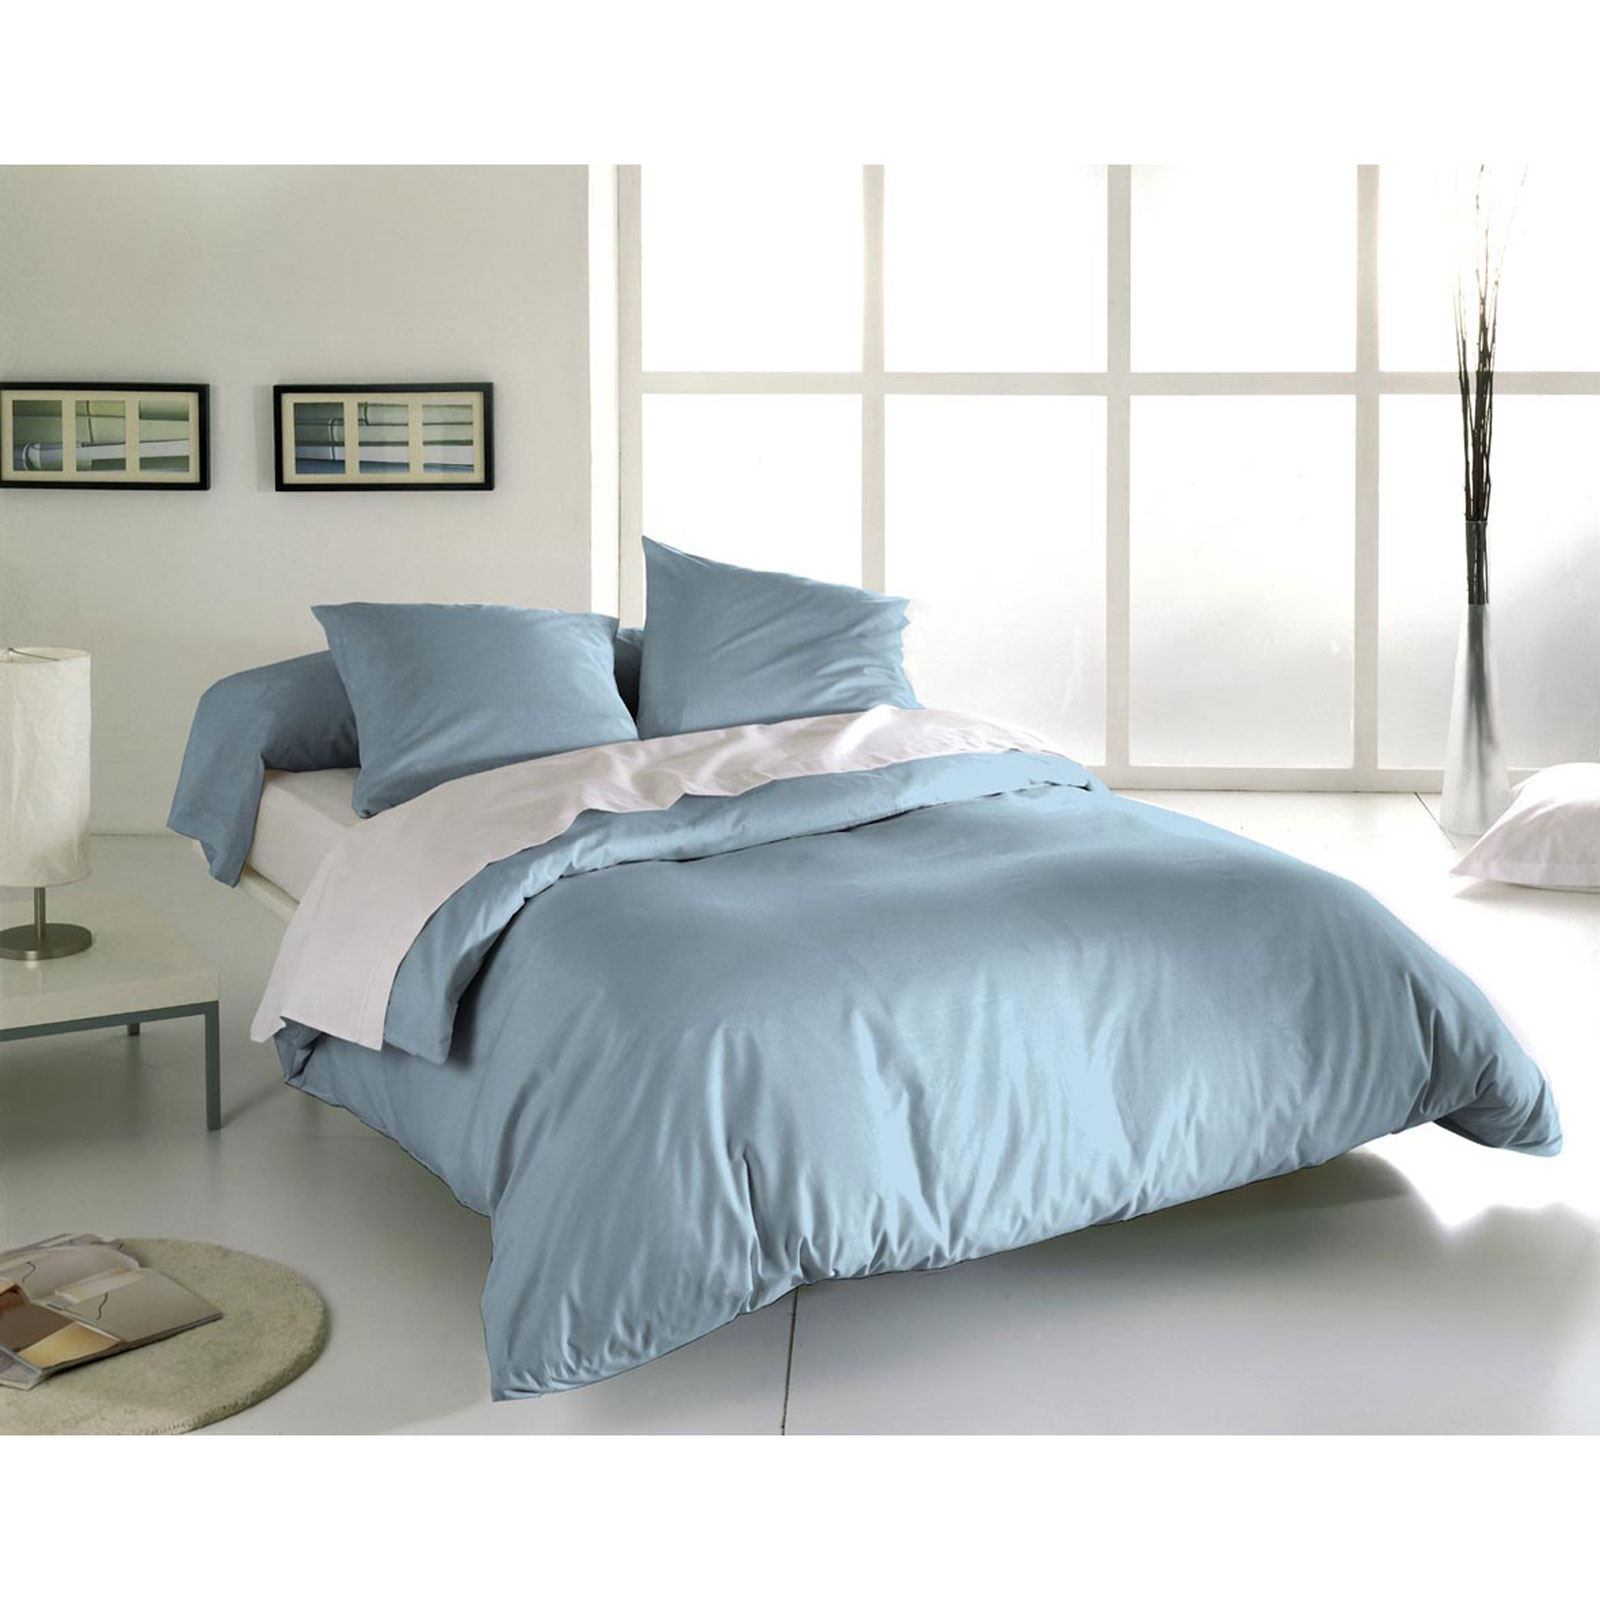 blanc d agate ensemble housse de couette et taies bleu ciel brandalley. Black Bedroom Furniture Sets. Home Design Ideas